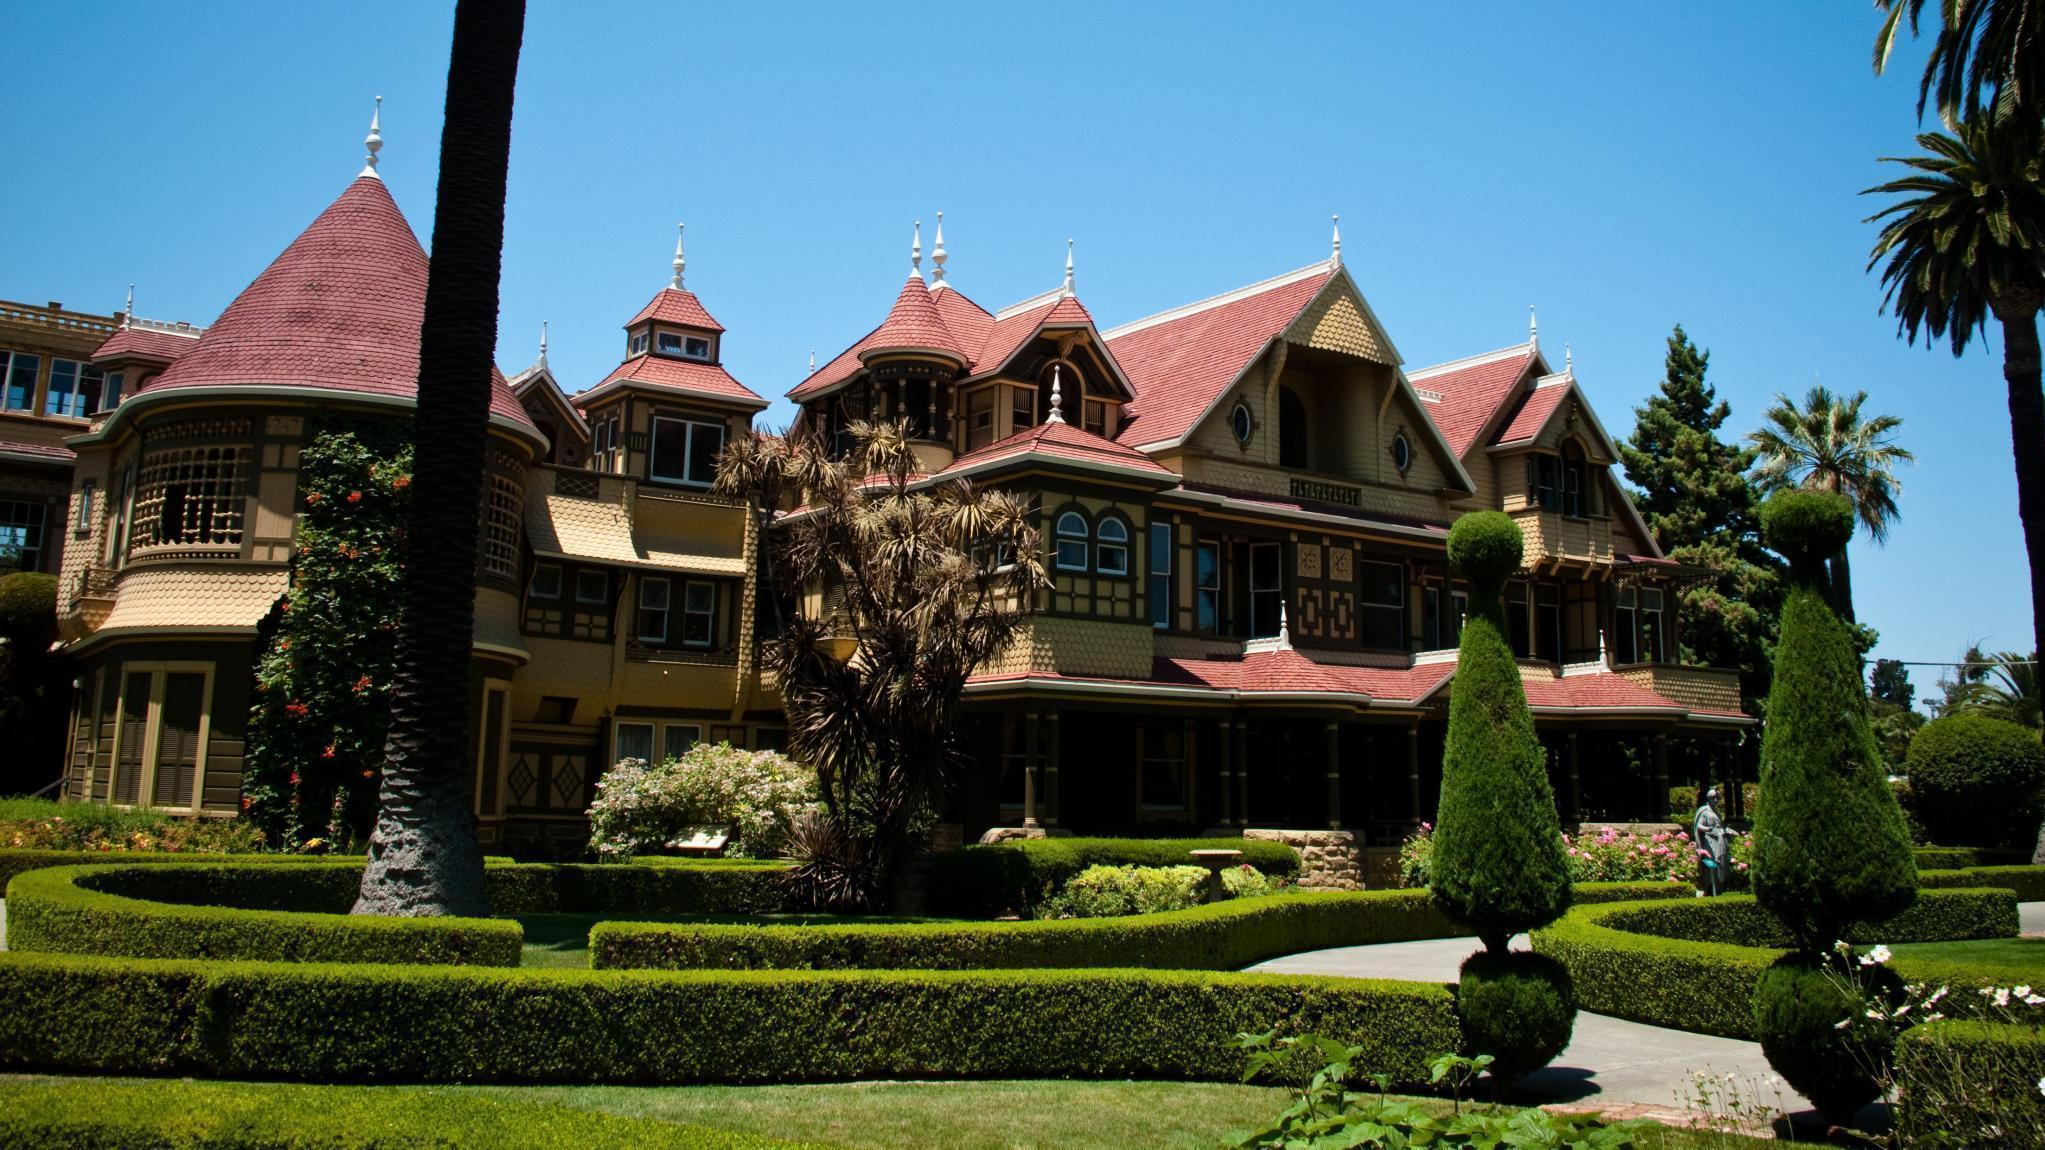 essays on sarah winchester and her mystery house The mystery of the winchester mystery house is now finally solved, and it  has  of the people who acquired sarah winchester's mansion following her  death  hopefully you have come to this essay because you're truly interested  in the.